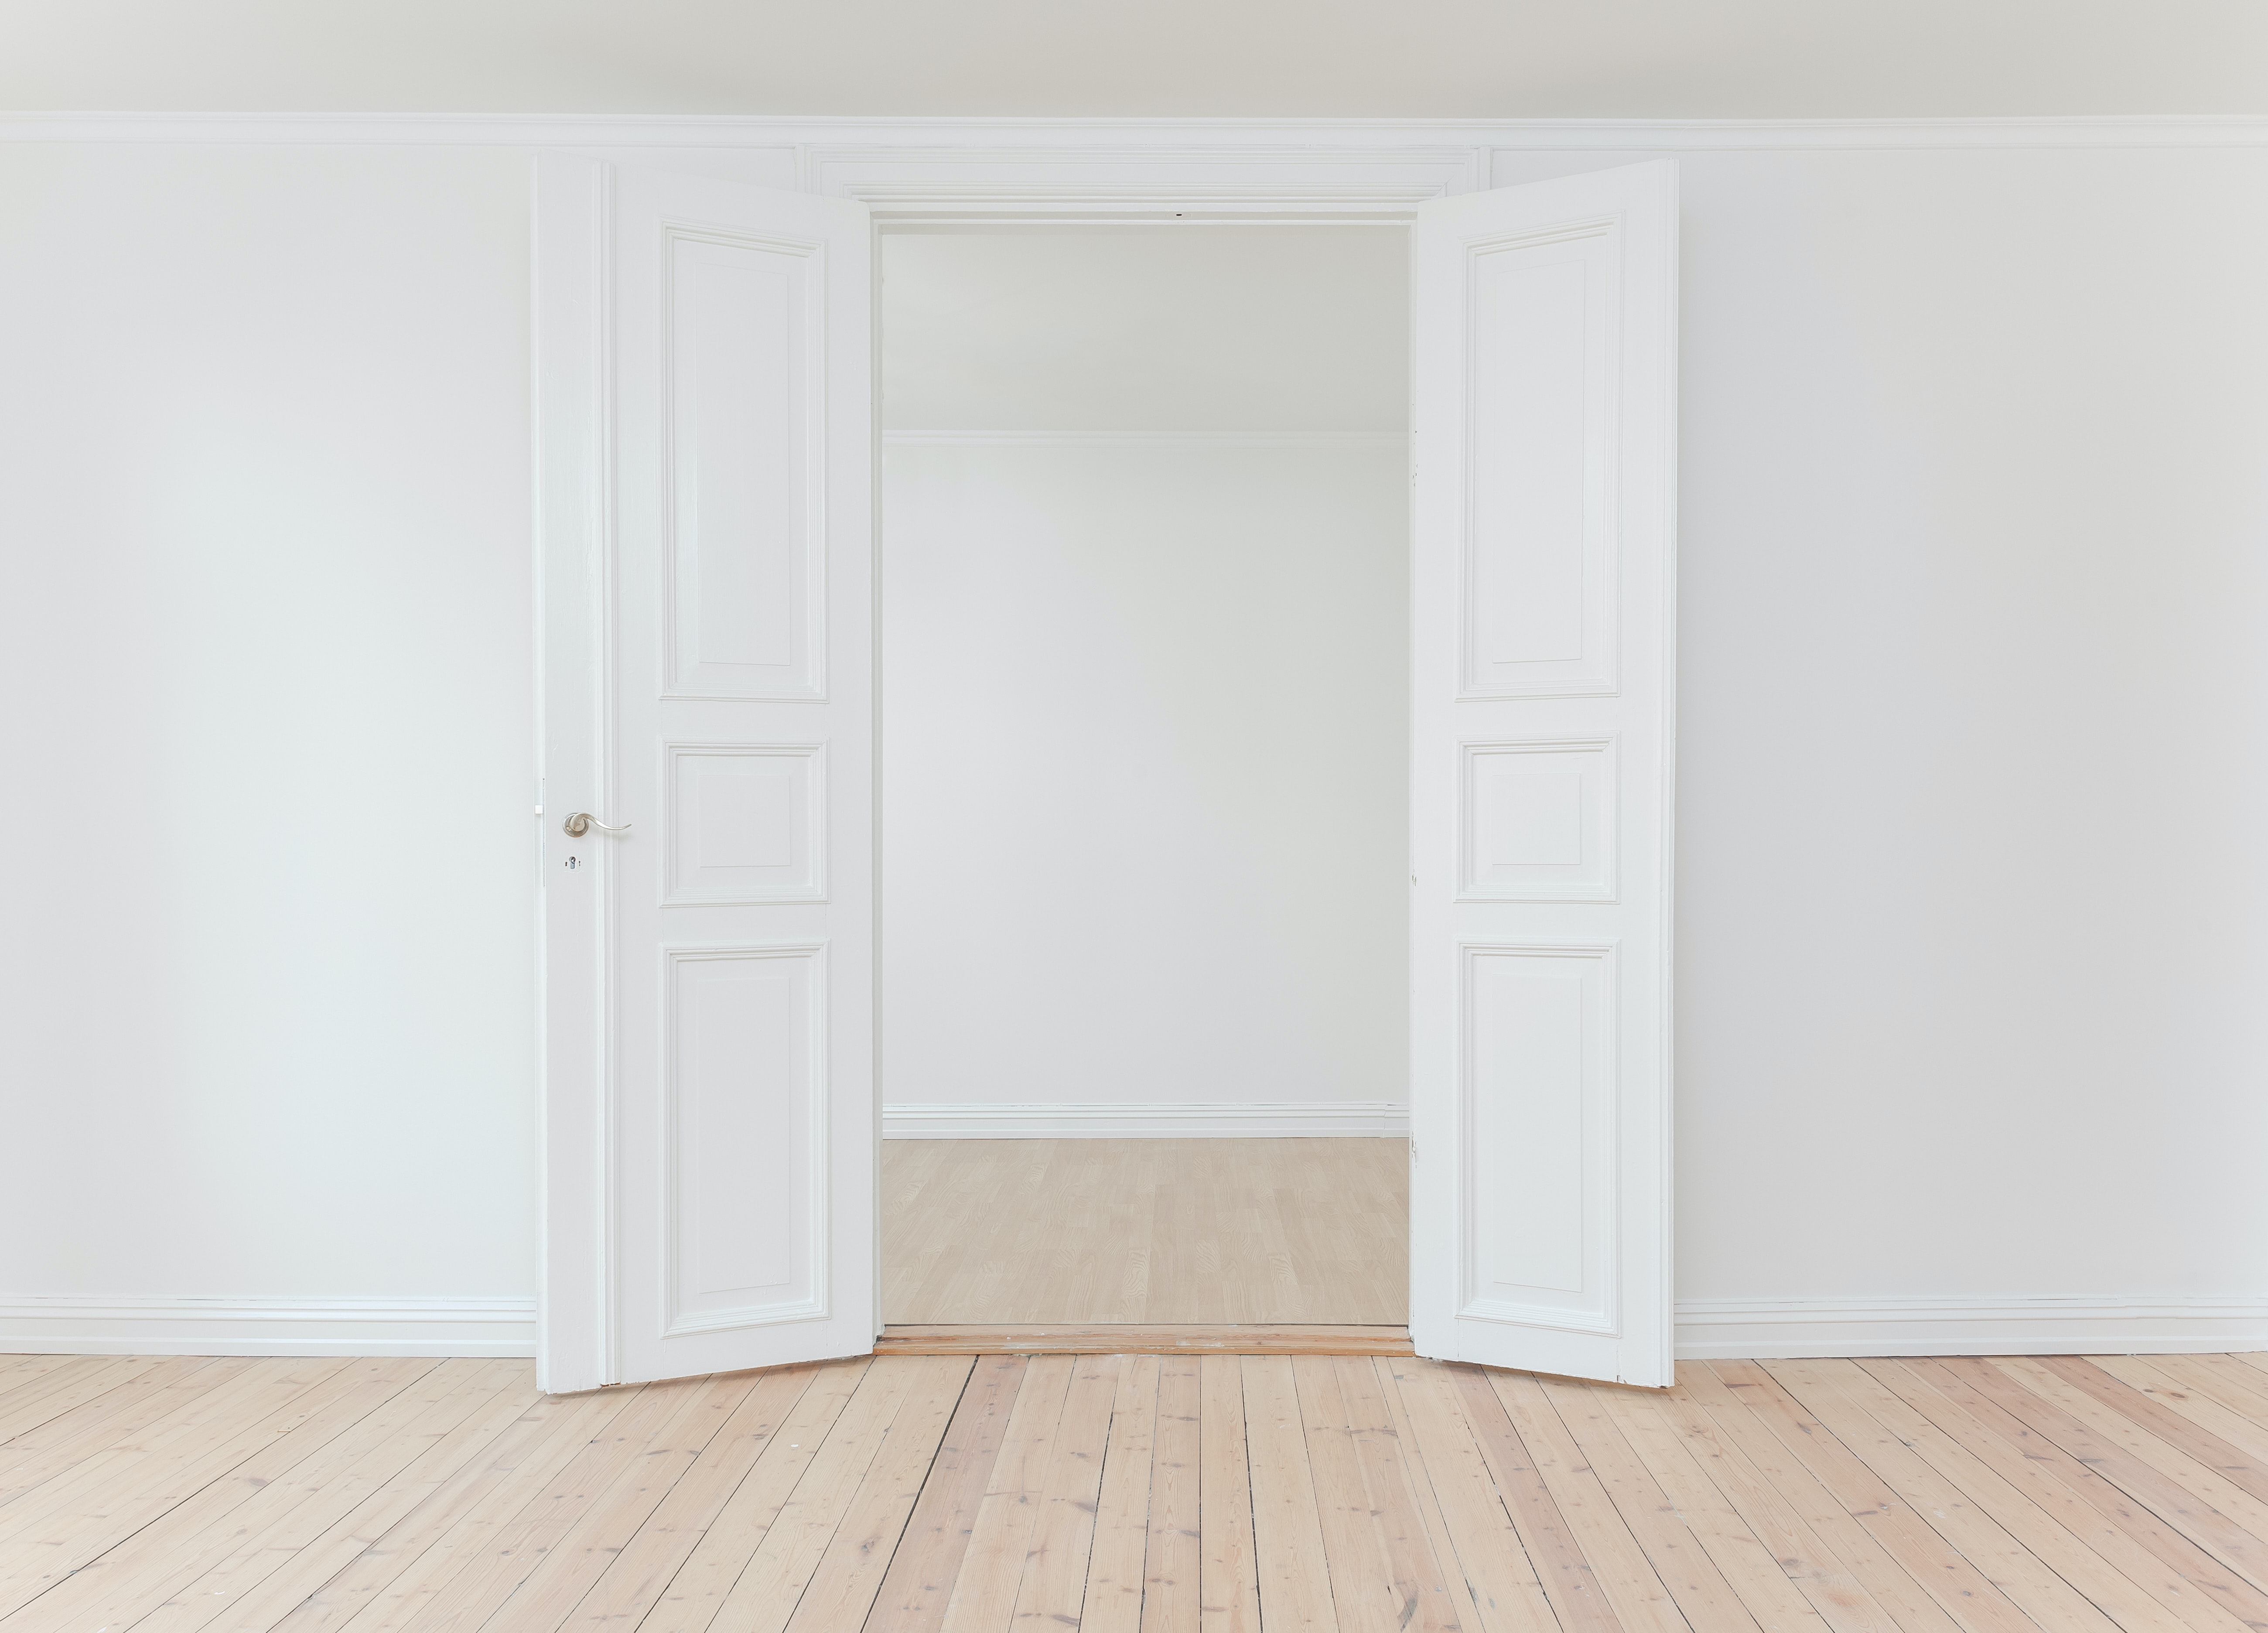 Picture of doors in a white room.